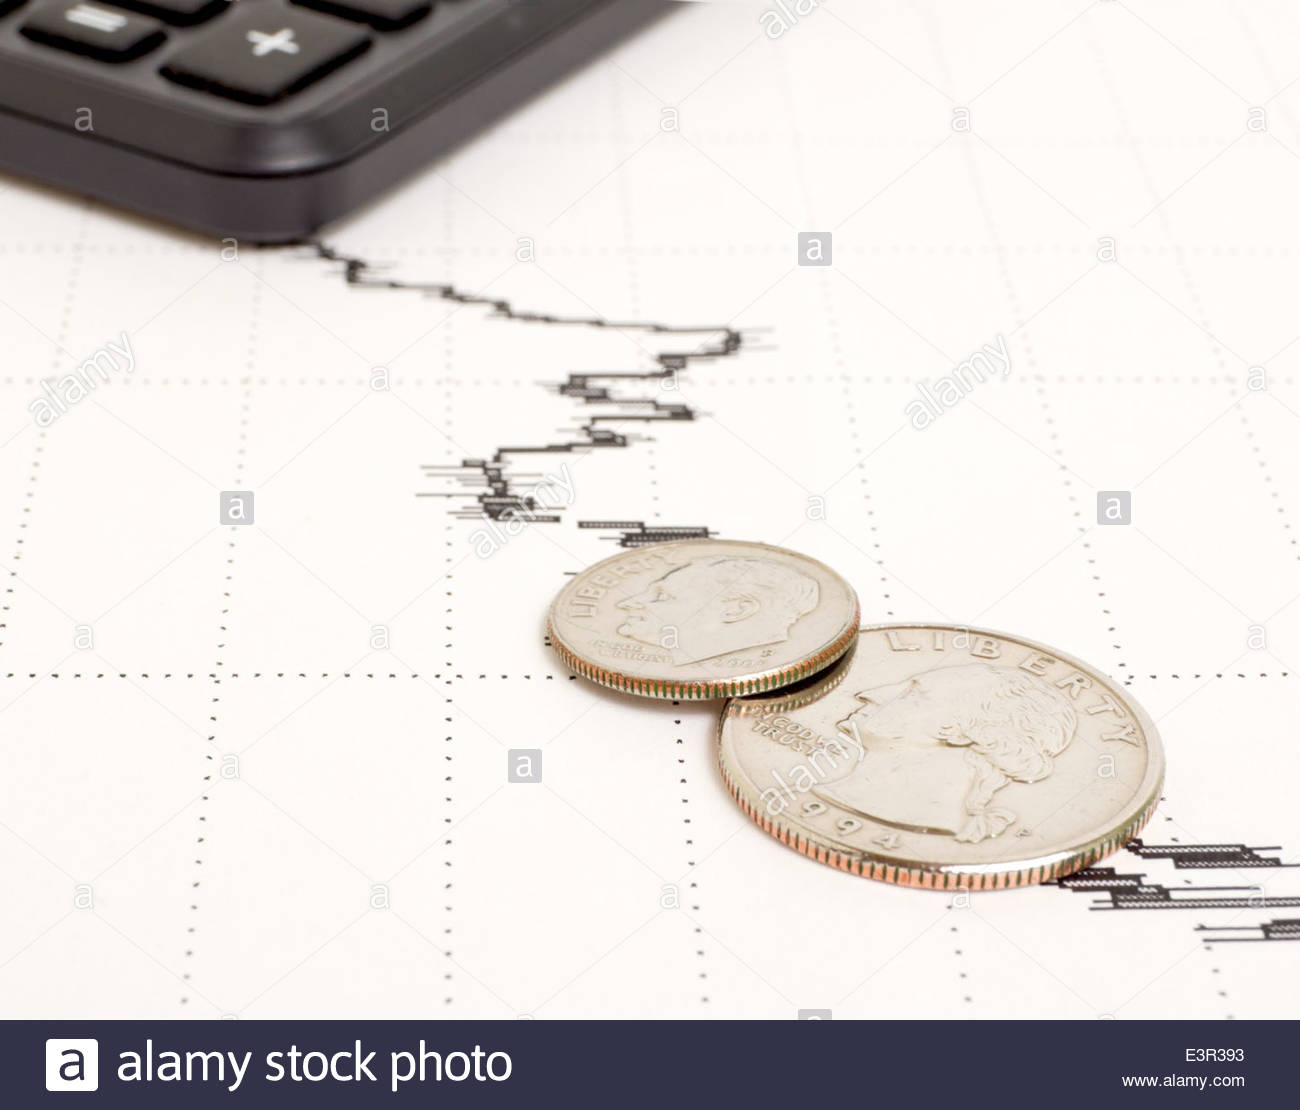 Decline in yield and general condition of the economy. Stock Photo